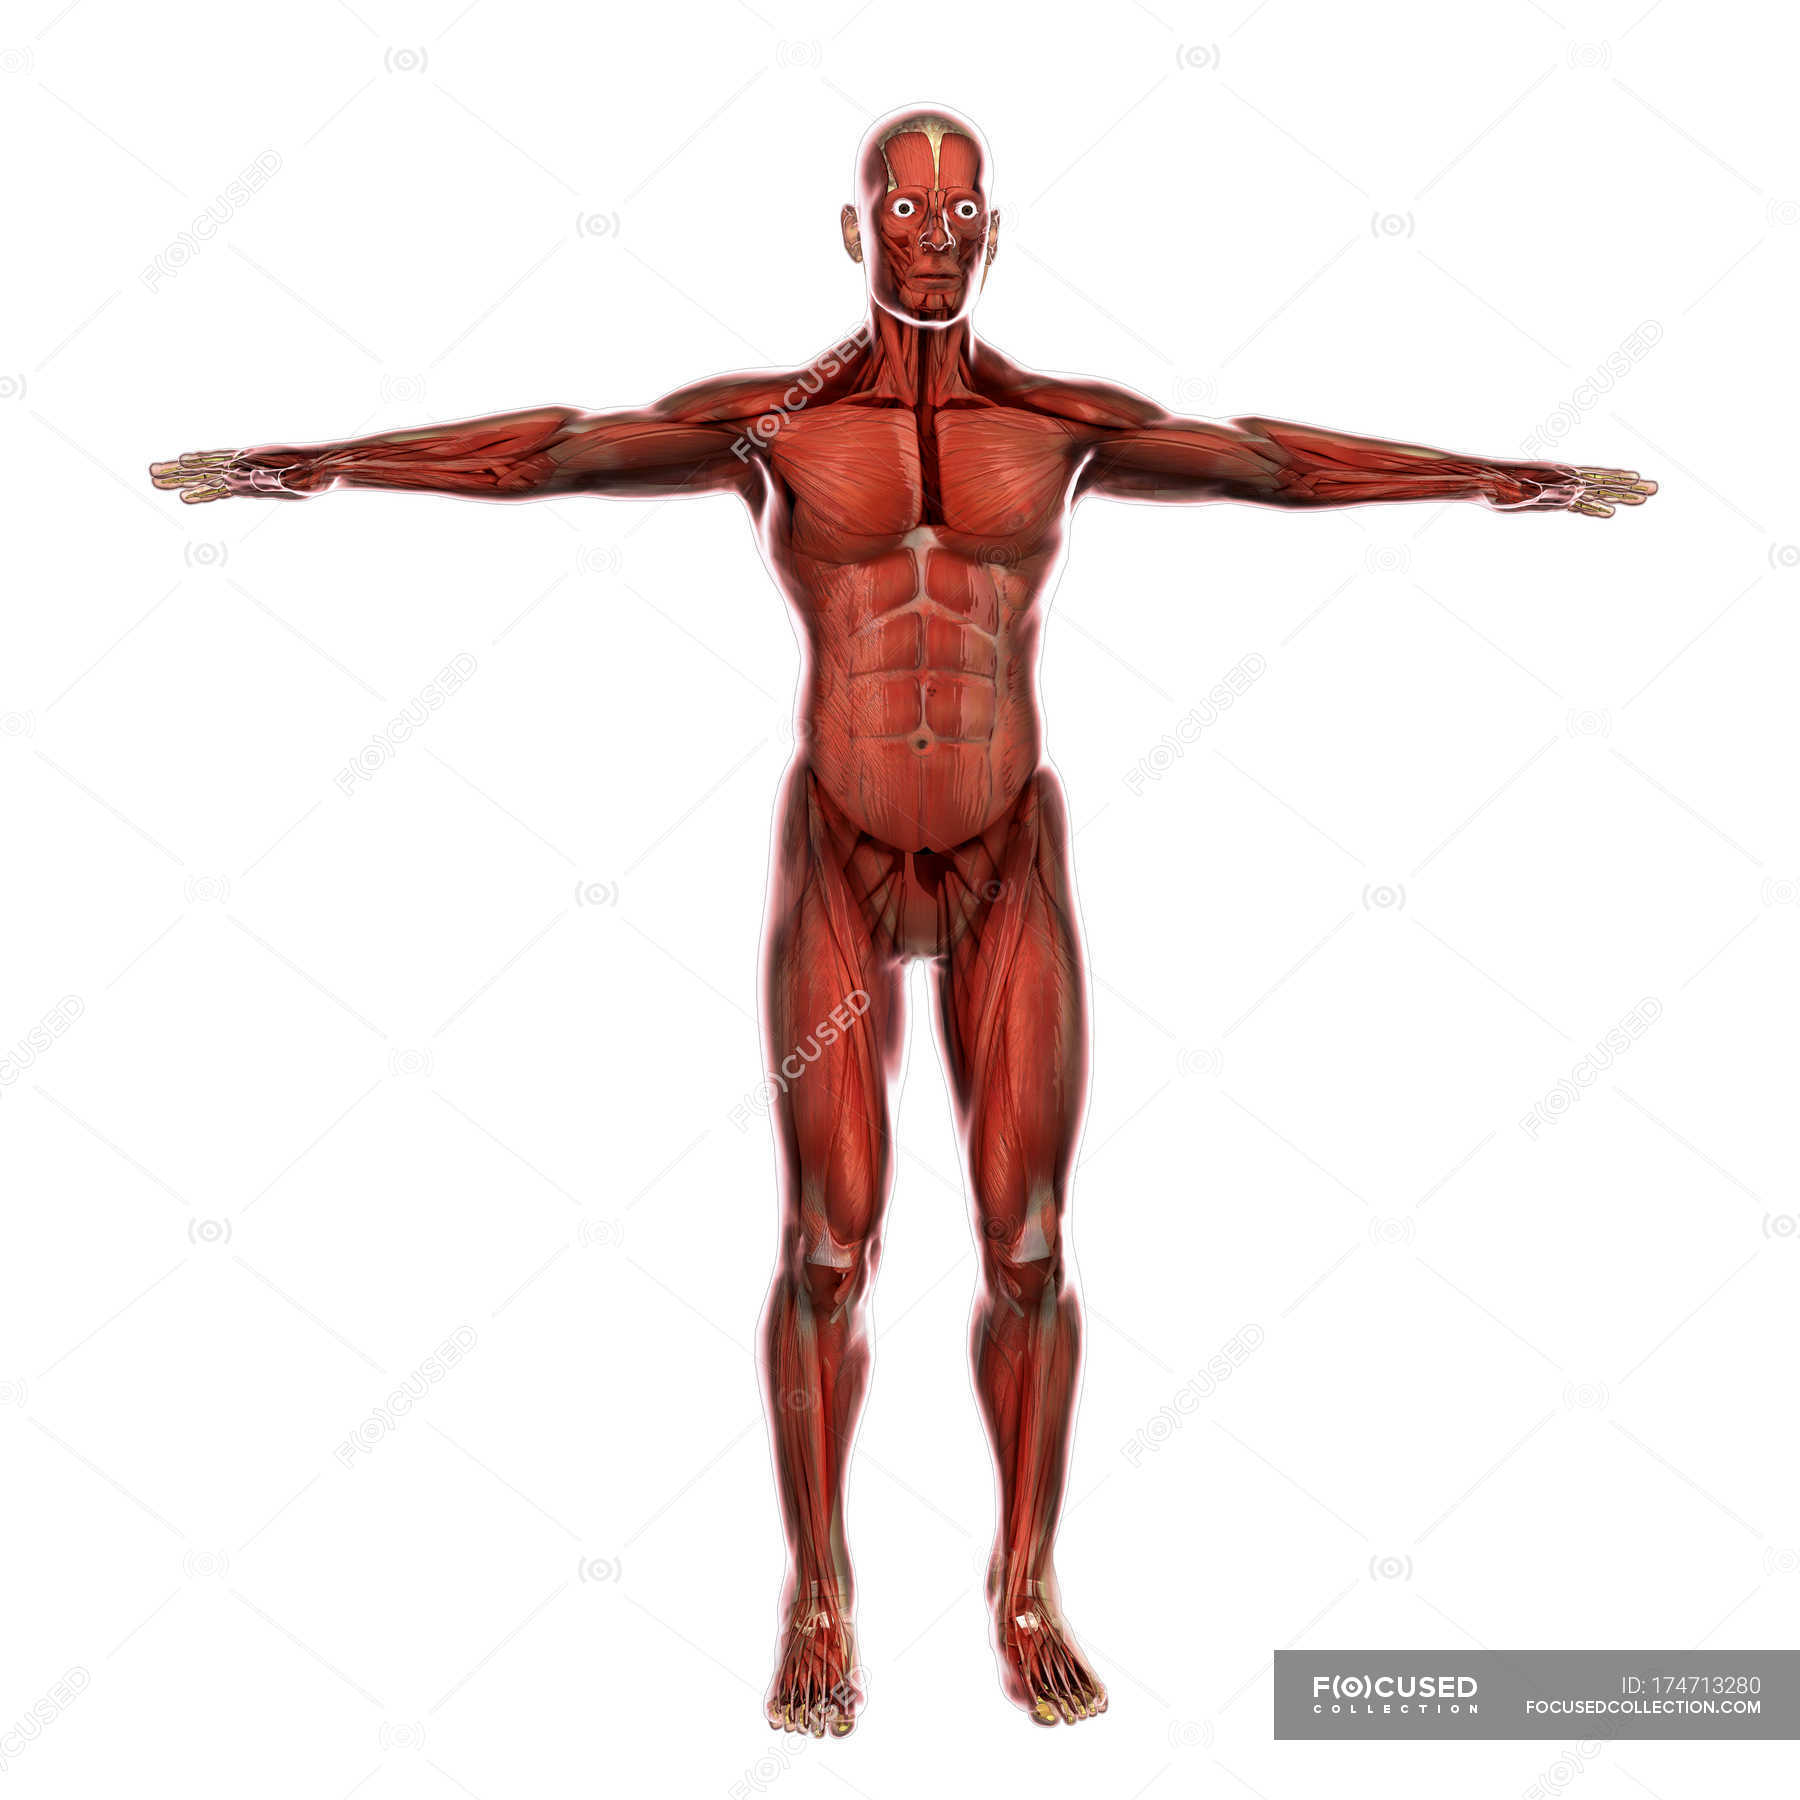 Medical Illustration Of Human Muscular System Stock Photo 174713280